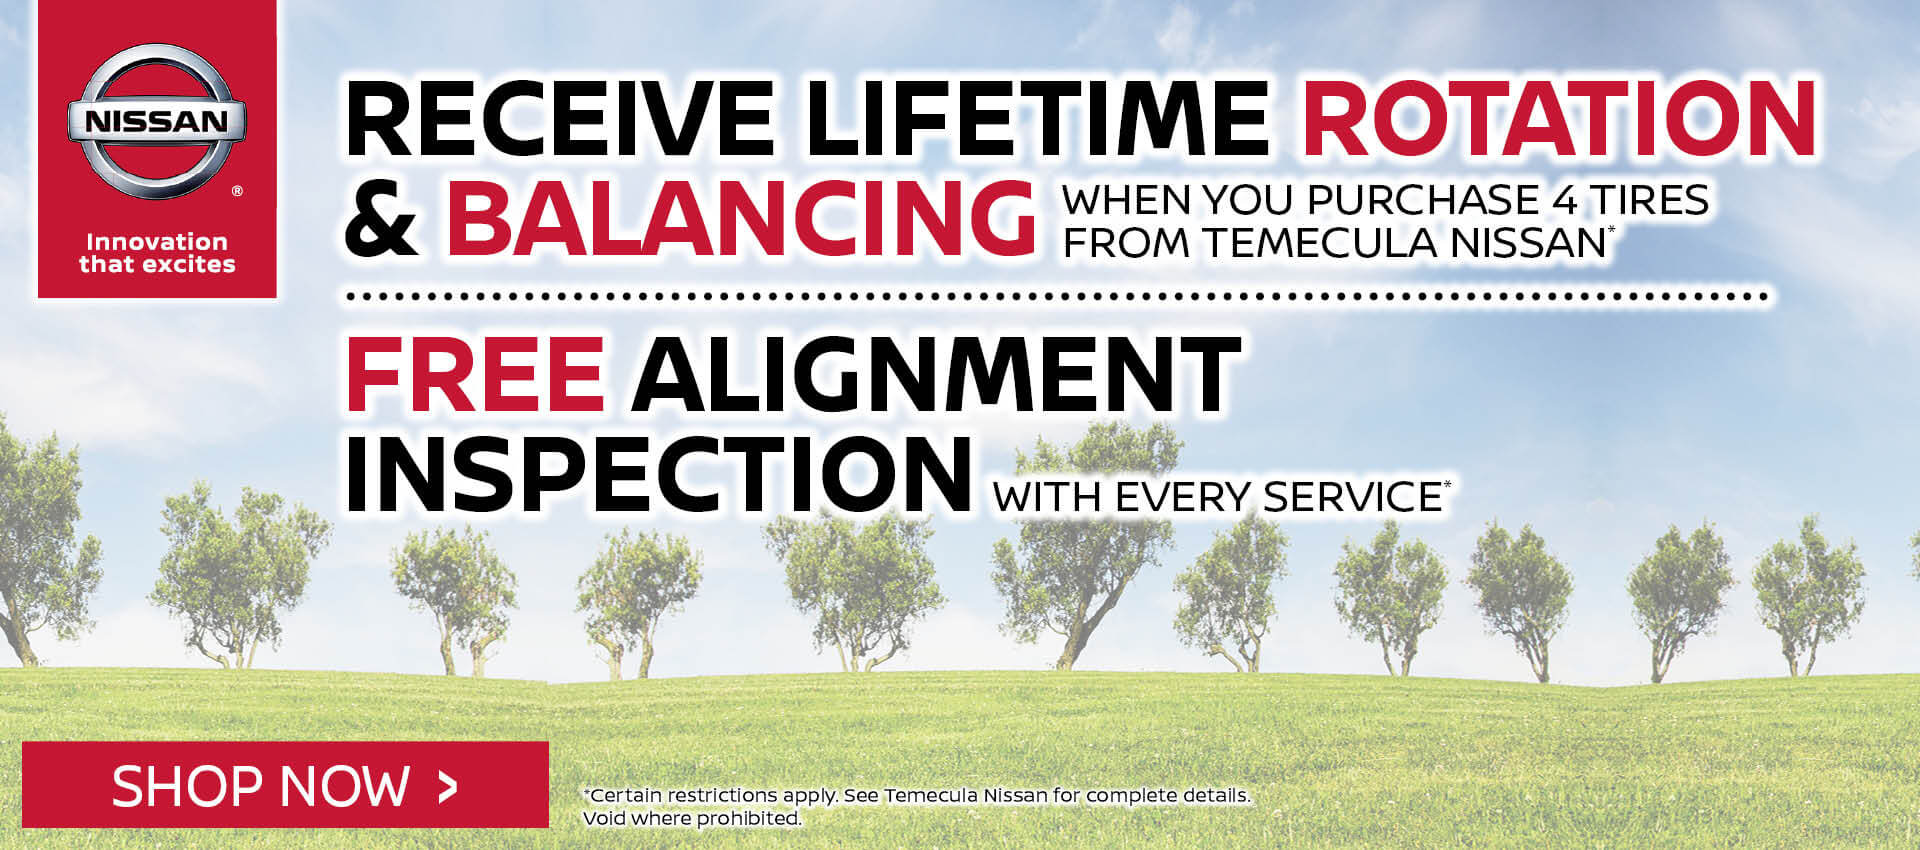 Lifetime Rotation & Balance